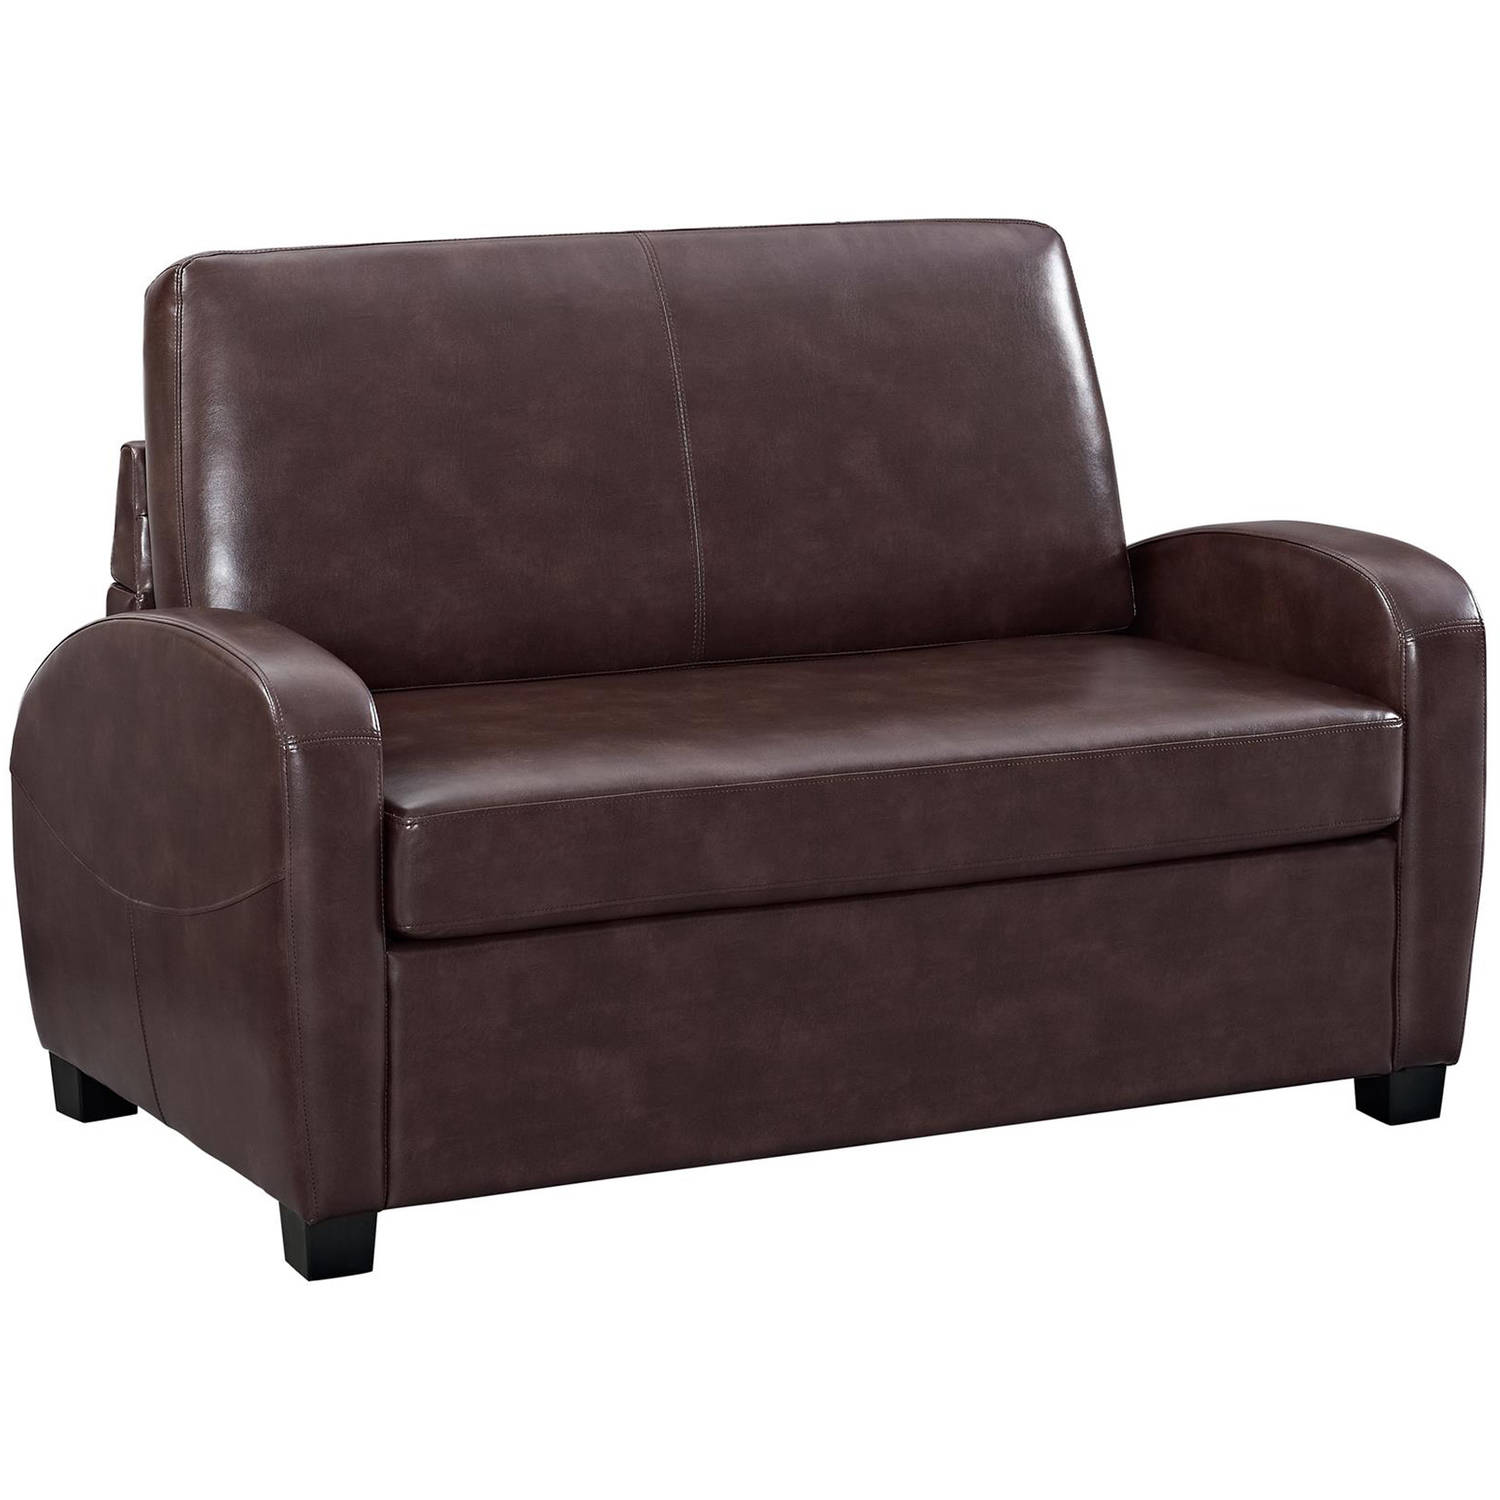 Convertible Sofa Leather Couch Twin Bed Mattress Sleeper Small Loveseat Brown Ebay